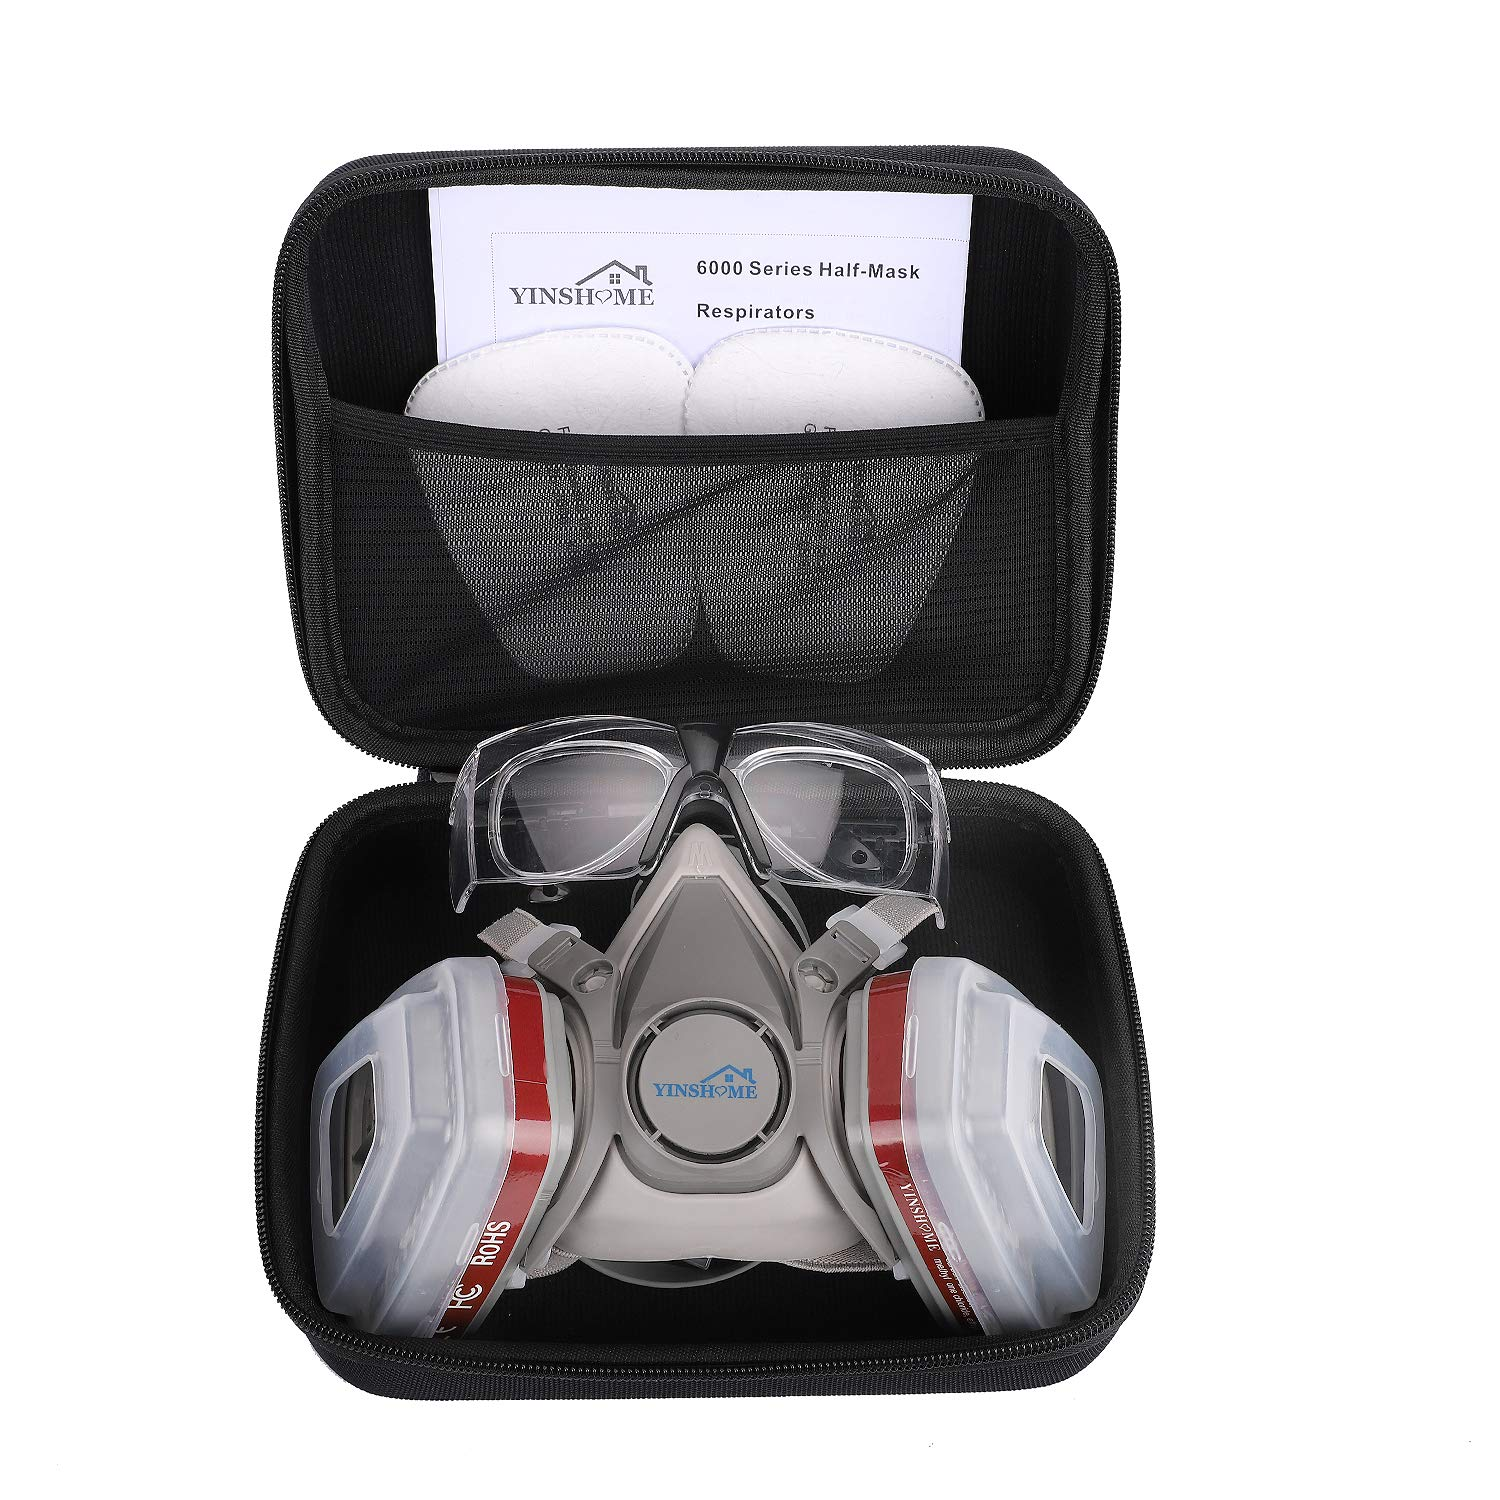 Yinshome Respirator Mask(Plus Safety Glasses and Hard Travel Case),Gas Mask Respirator with Filter as Paint Mask,Chemical Mask for Breathing Protection Respirator Against Dust,Organic Vapors,Chemicals by YINSHOME